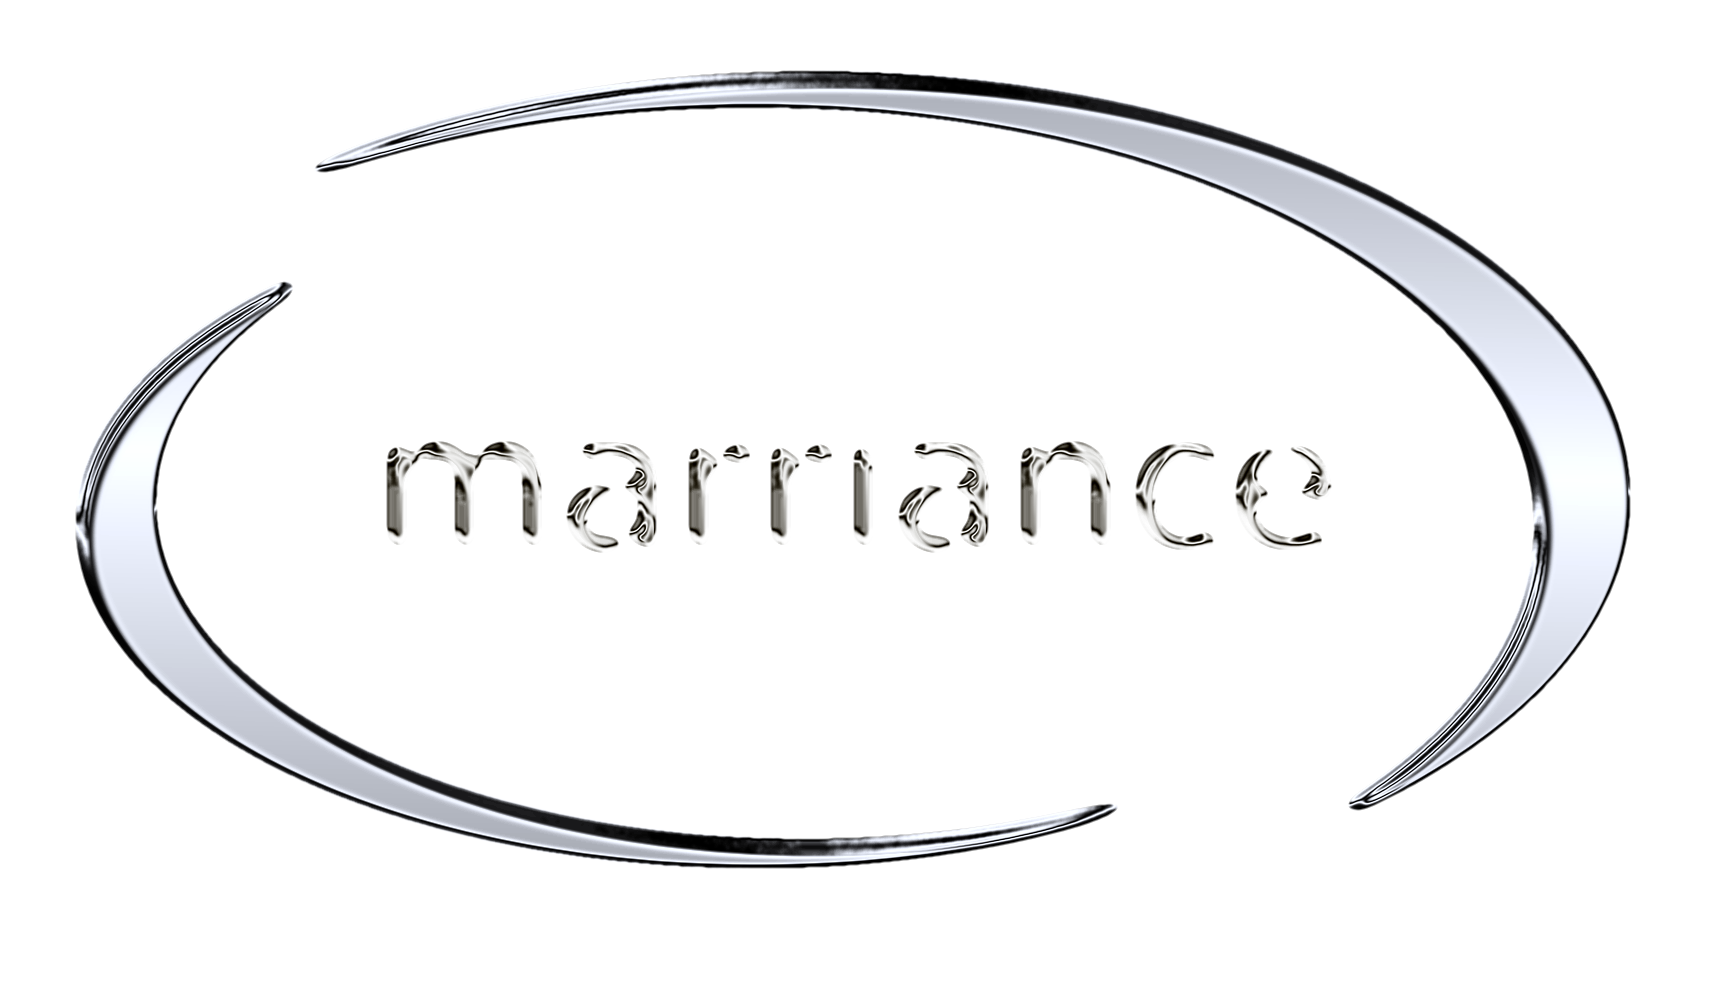 Marriance